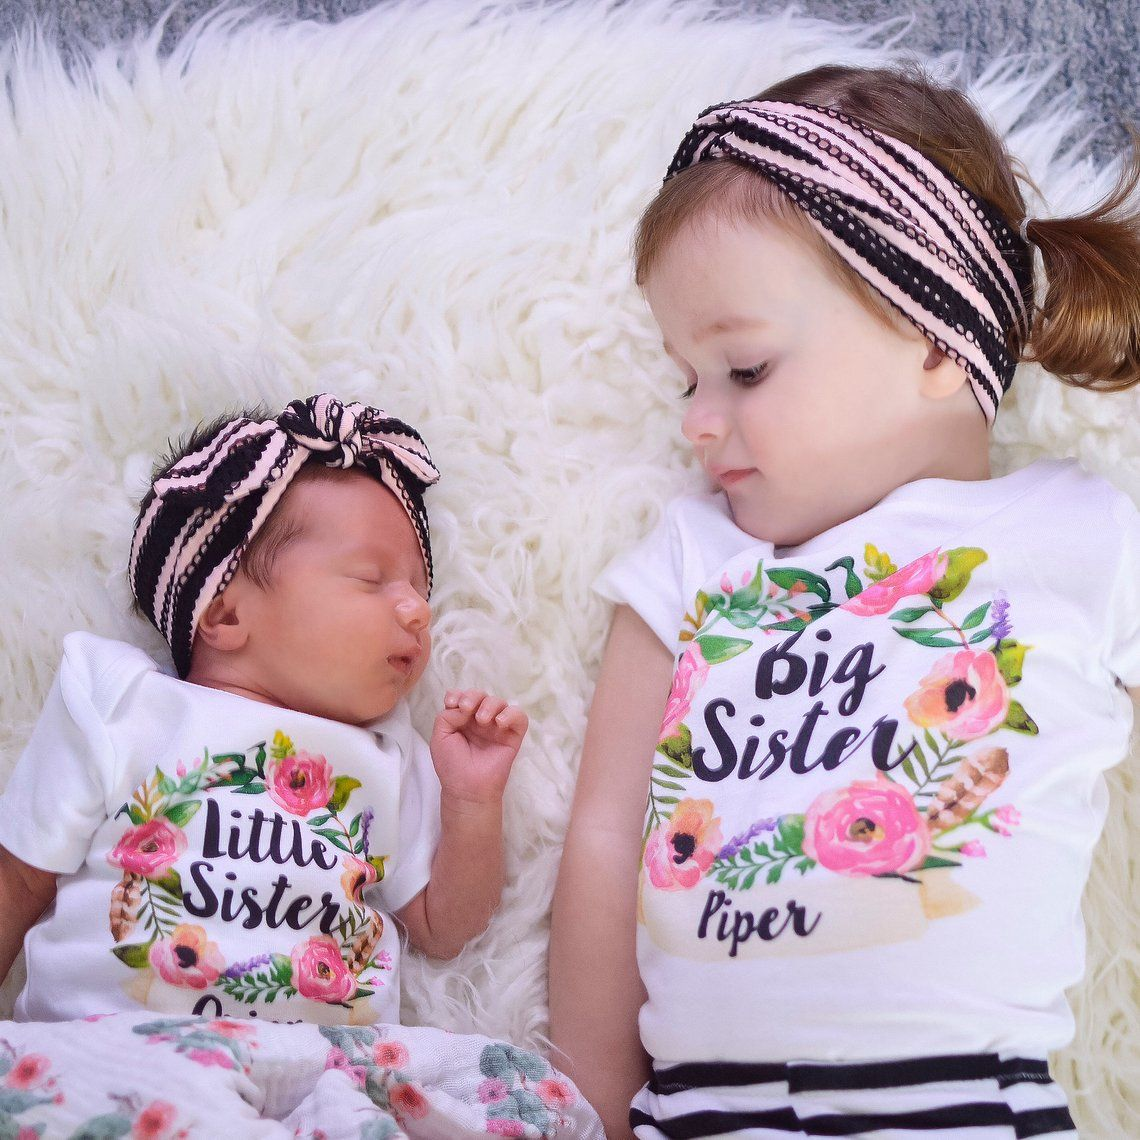 Big Sister Little Sister Matching Sister Outfits Personalized Sibling Set Big Sister Shirt Little Sister Sister Outfits Baby Girl Floral Big Sister Outfits